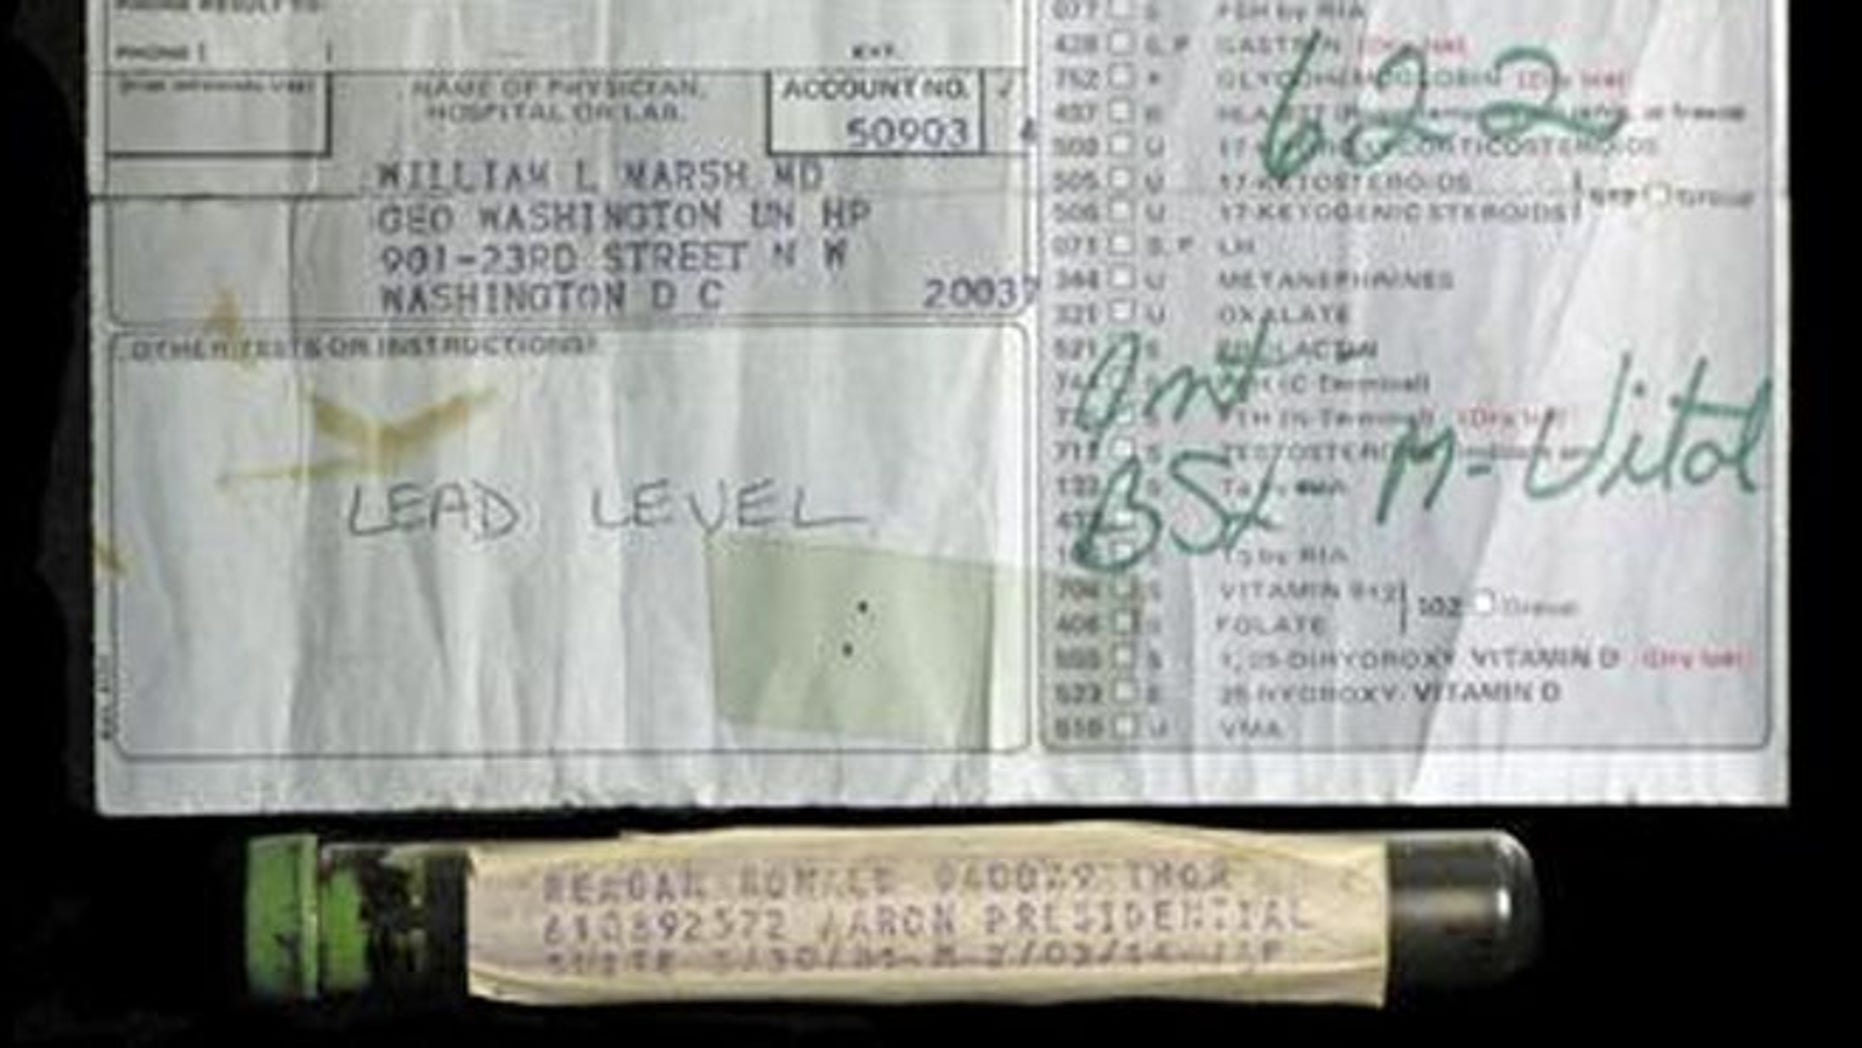 Shown here is a vial purportedly containing the late President Ronald Reagan's blood, as well as a lab slip.